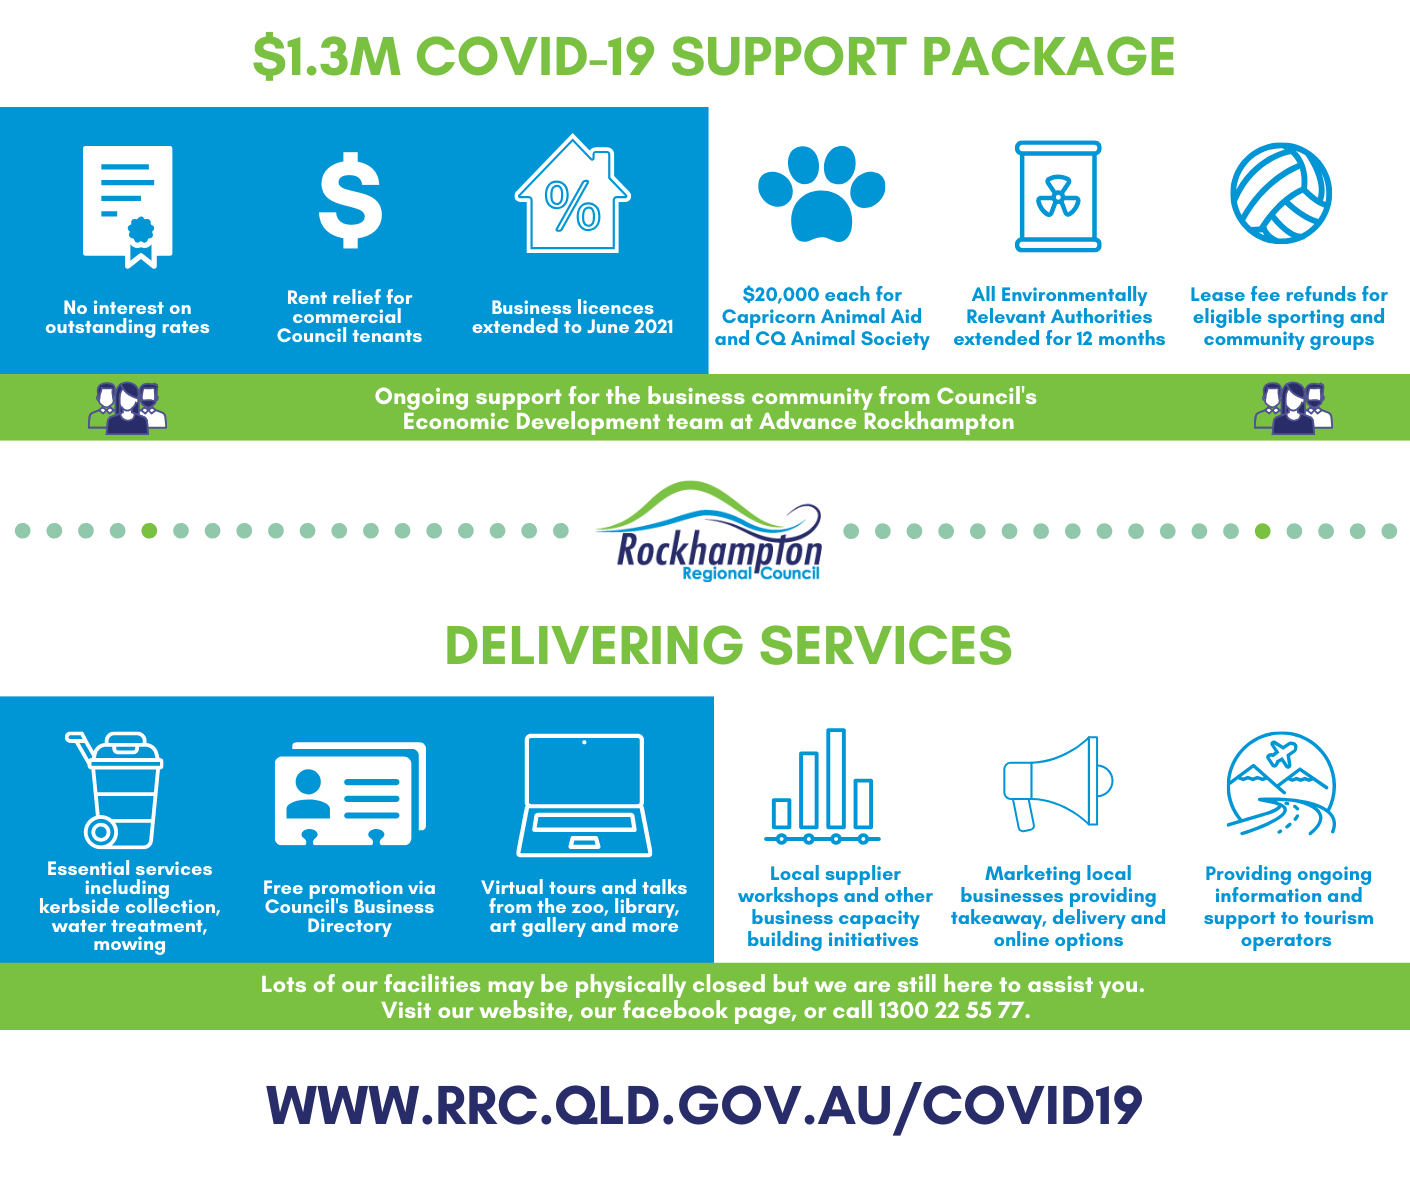 Support package and delivering services graphic.png